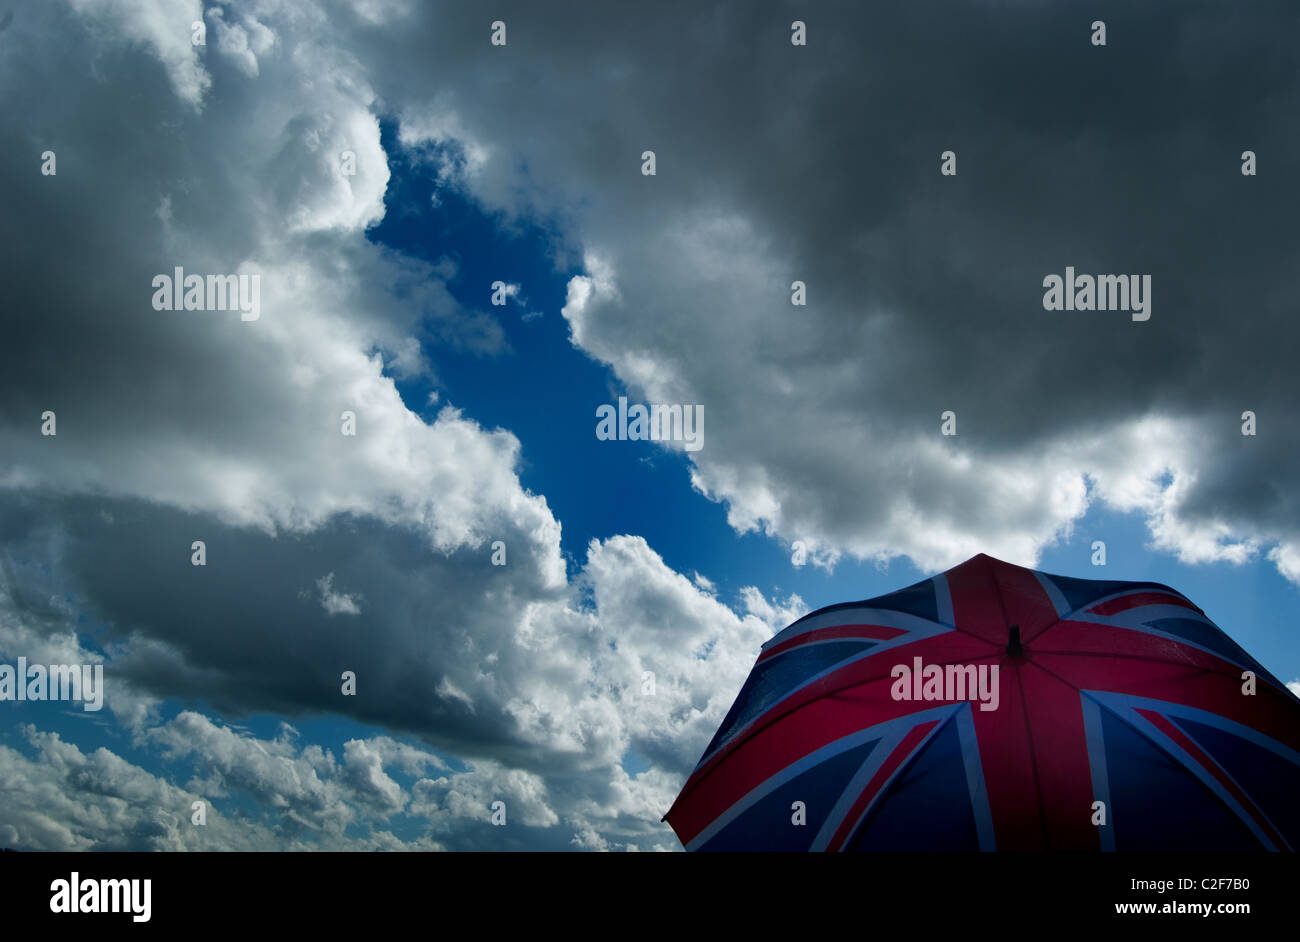 Brexit,Union jack umbrella against a cloudy, stormy sky. British economic / weather concept. - Stock Image